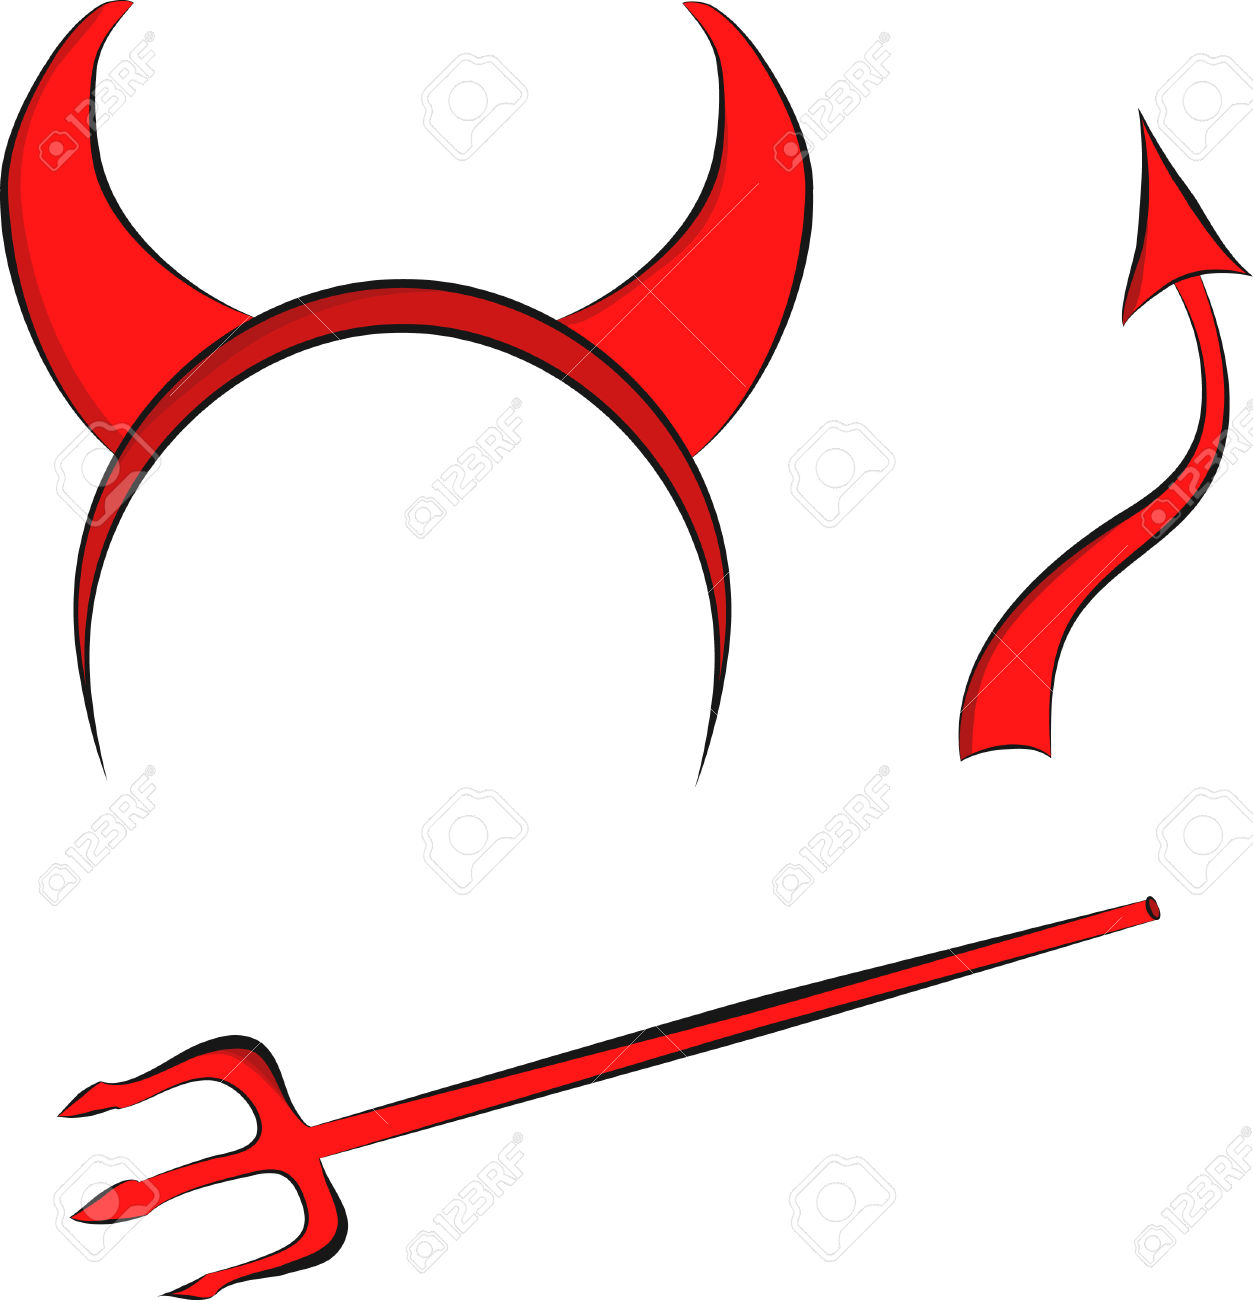 Devil Horns And Tail Clipart.